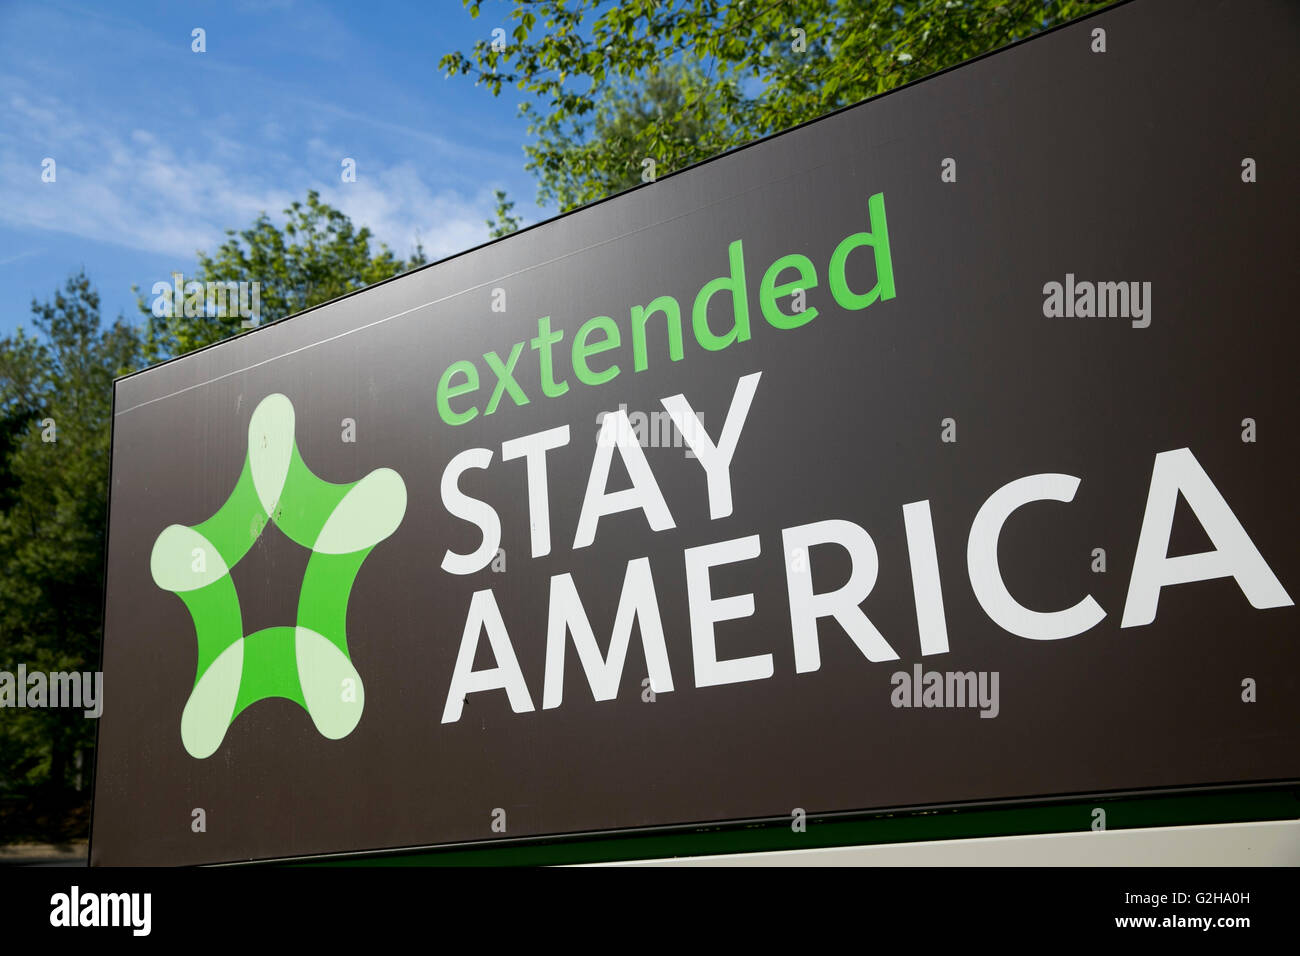 A logo sign outside of an Extended Stay America hotel in Gaithersburg, Maryland on May 29, 2016. - Stock Image